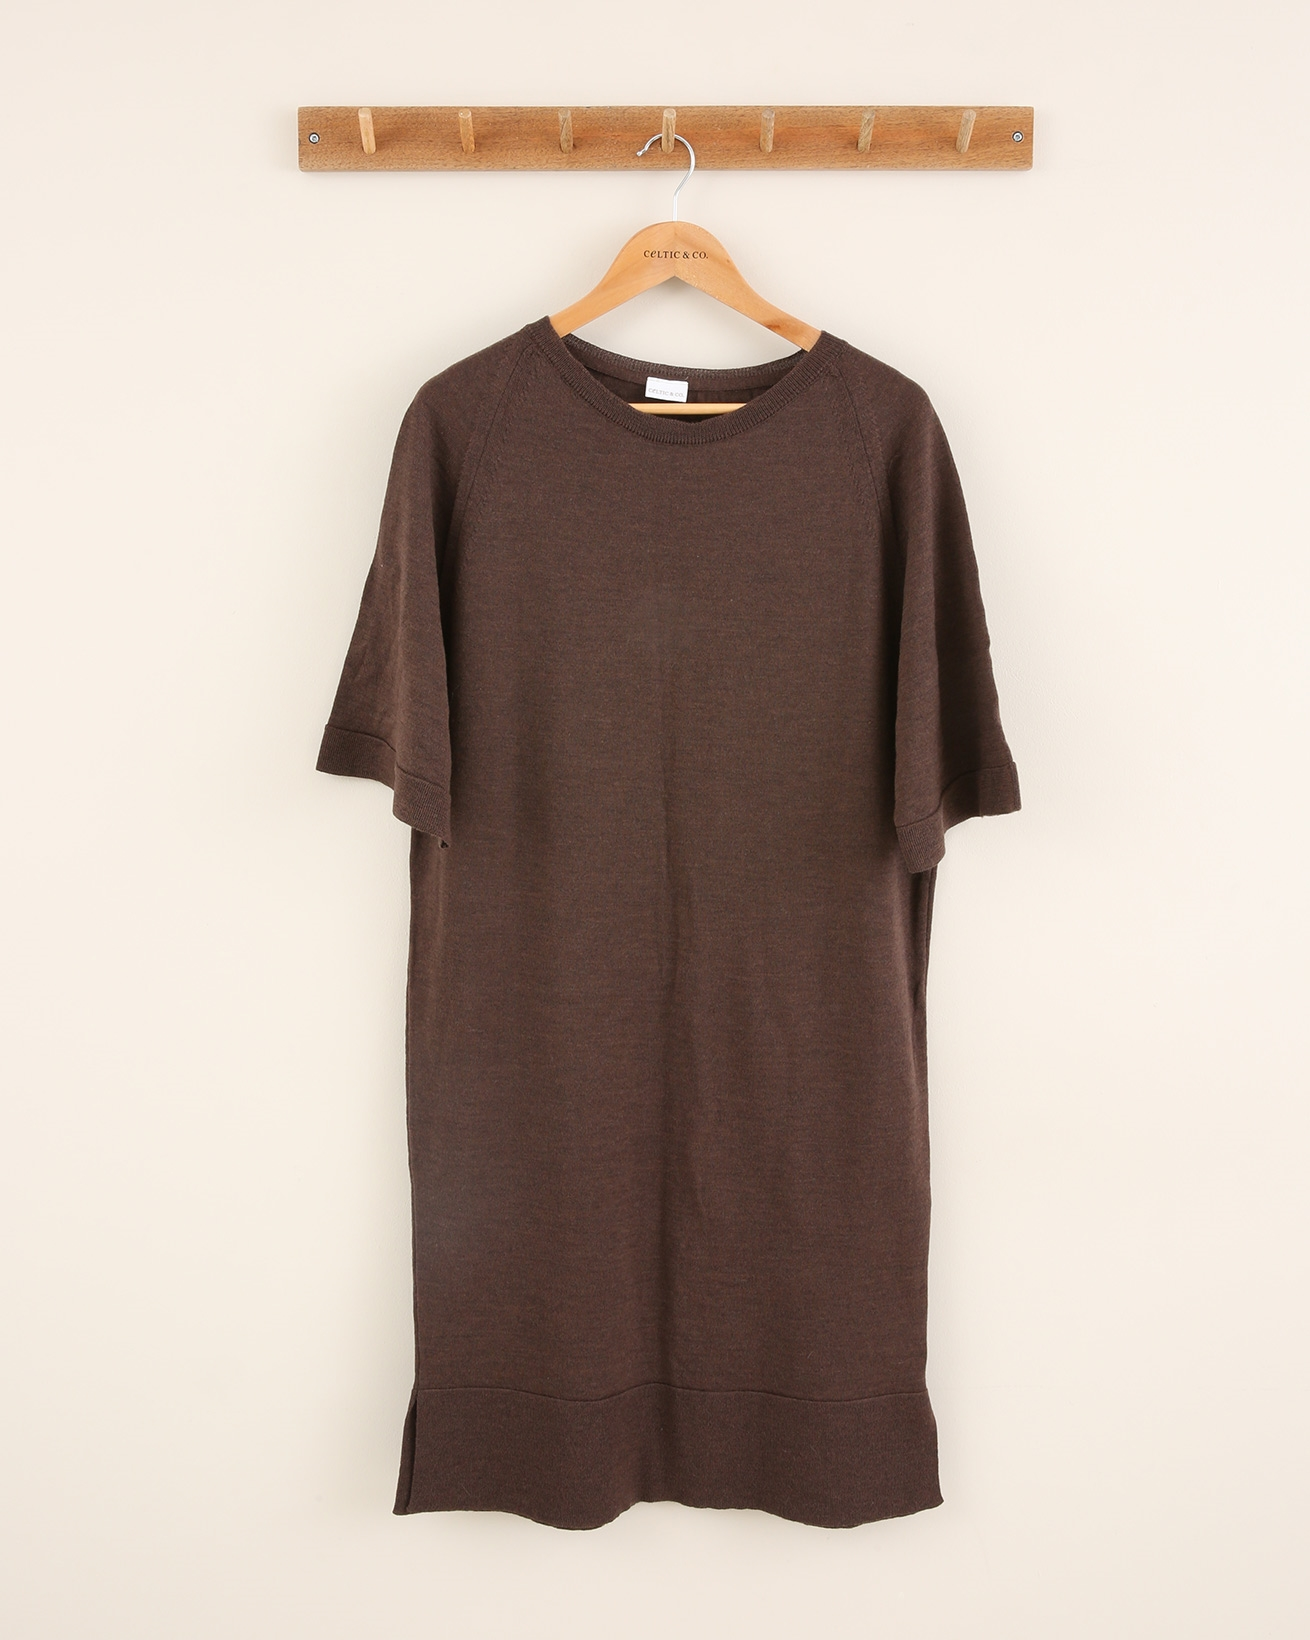 Slouchy Merino Crew Neck Dress - Size Small - Tanners Brown - 1834